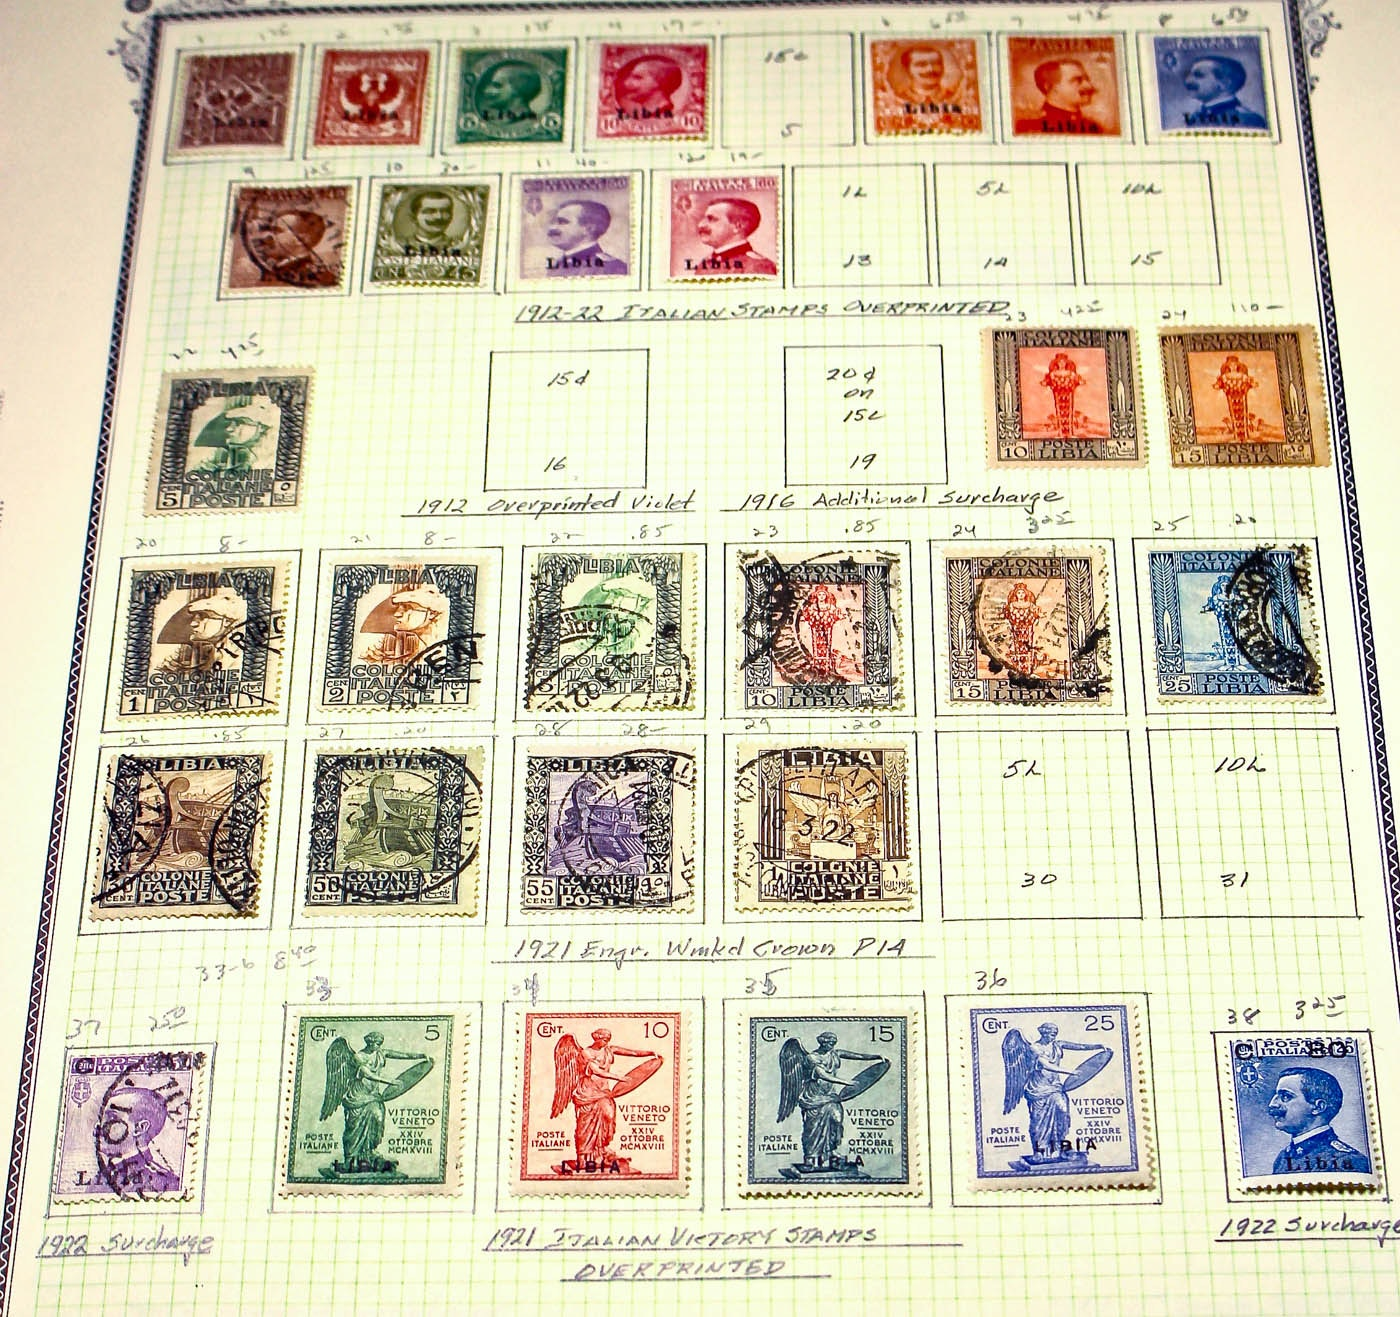 Collection of Approximately 100 Antique and Vintage Stamps from Libya